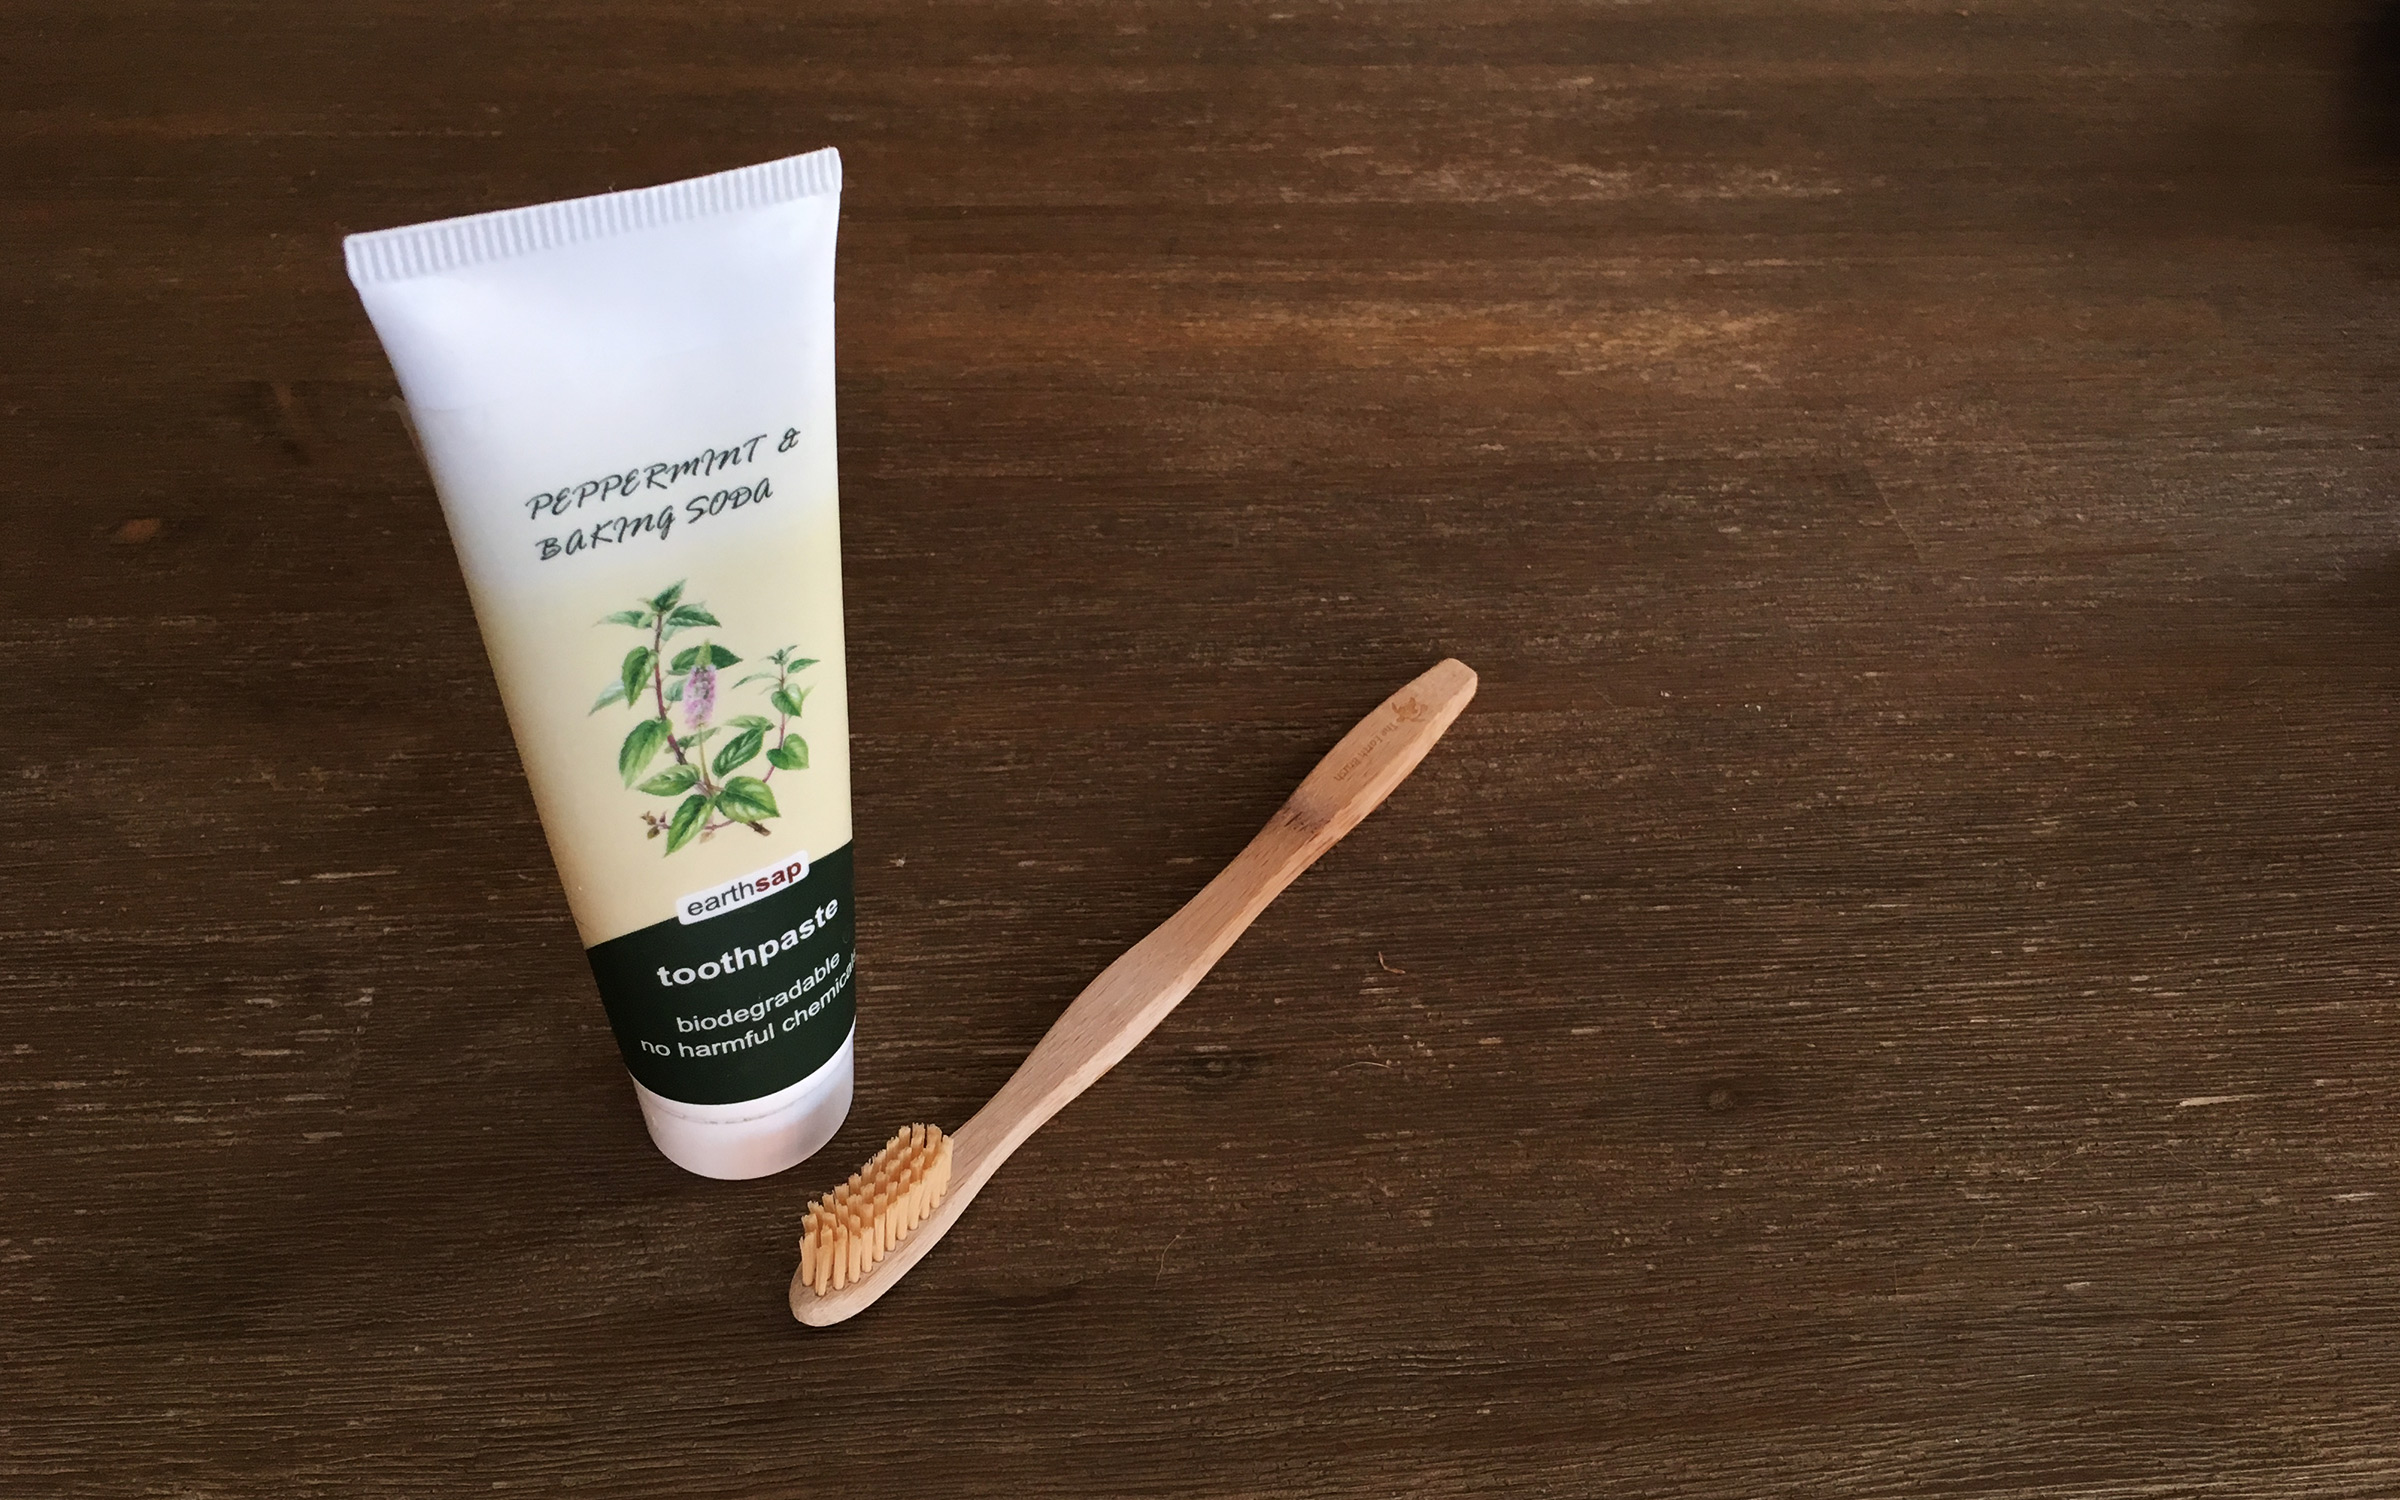 earthsap toothpaste product image